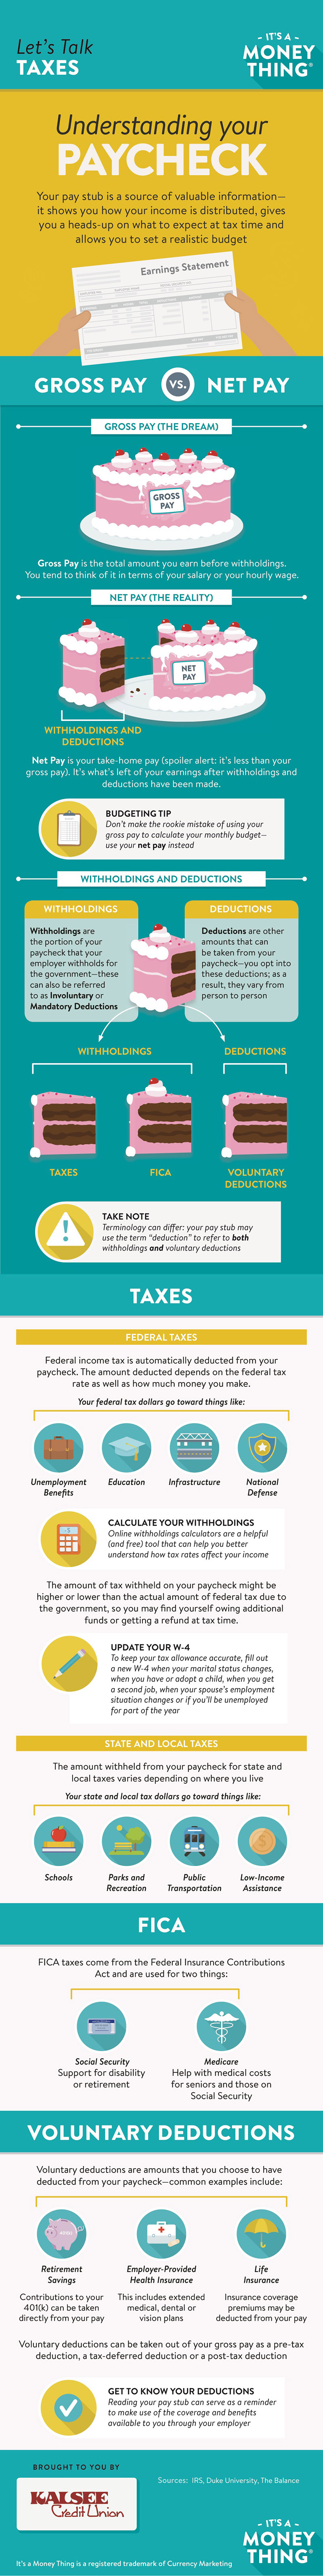 let's talk about taxes infographic, click for transcription